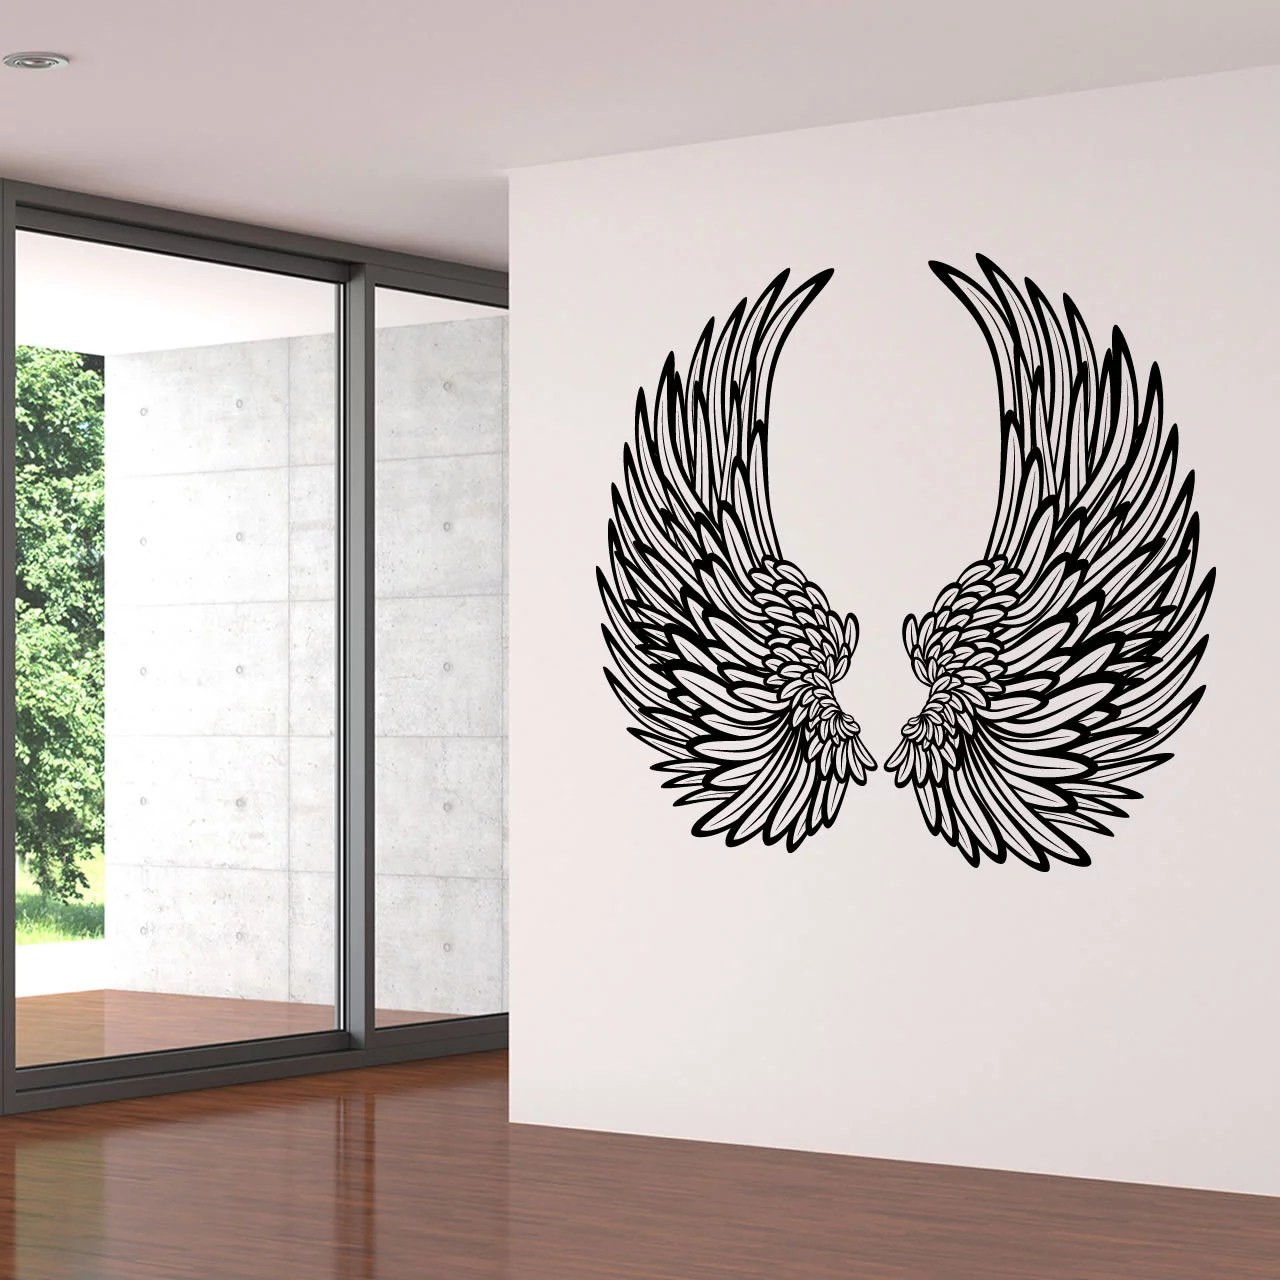 Decorative Wall Stickers Decorative Angel Wings Wall Sticker World Of Wall Stickers